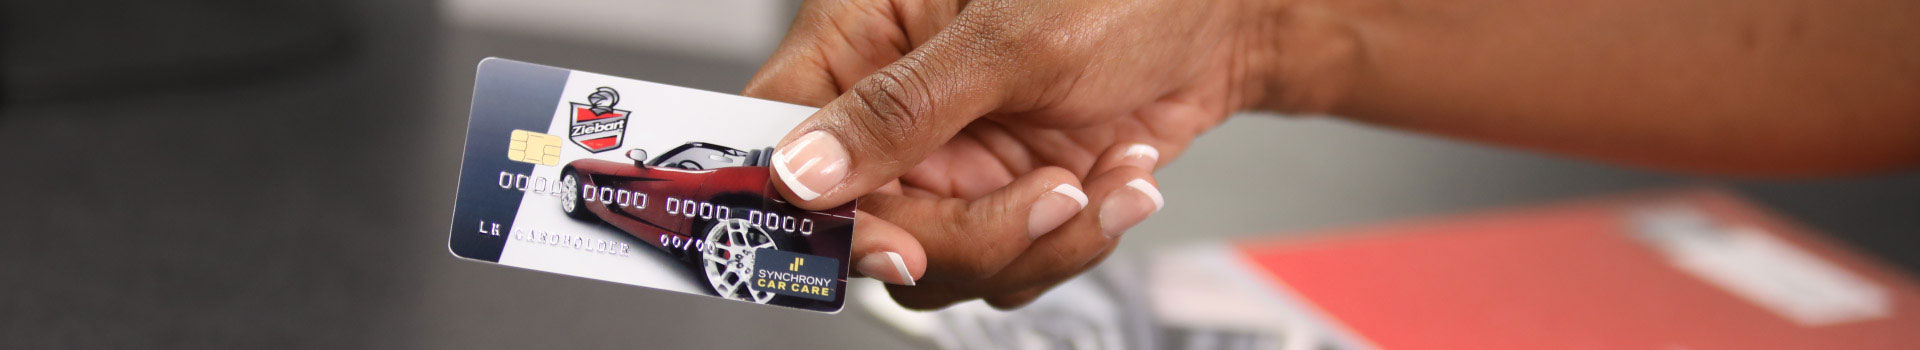 Hands holding a Ziebart credit card